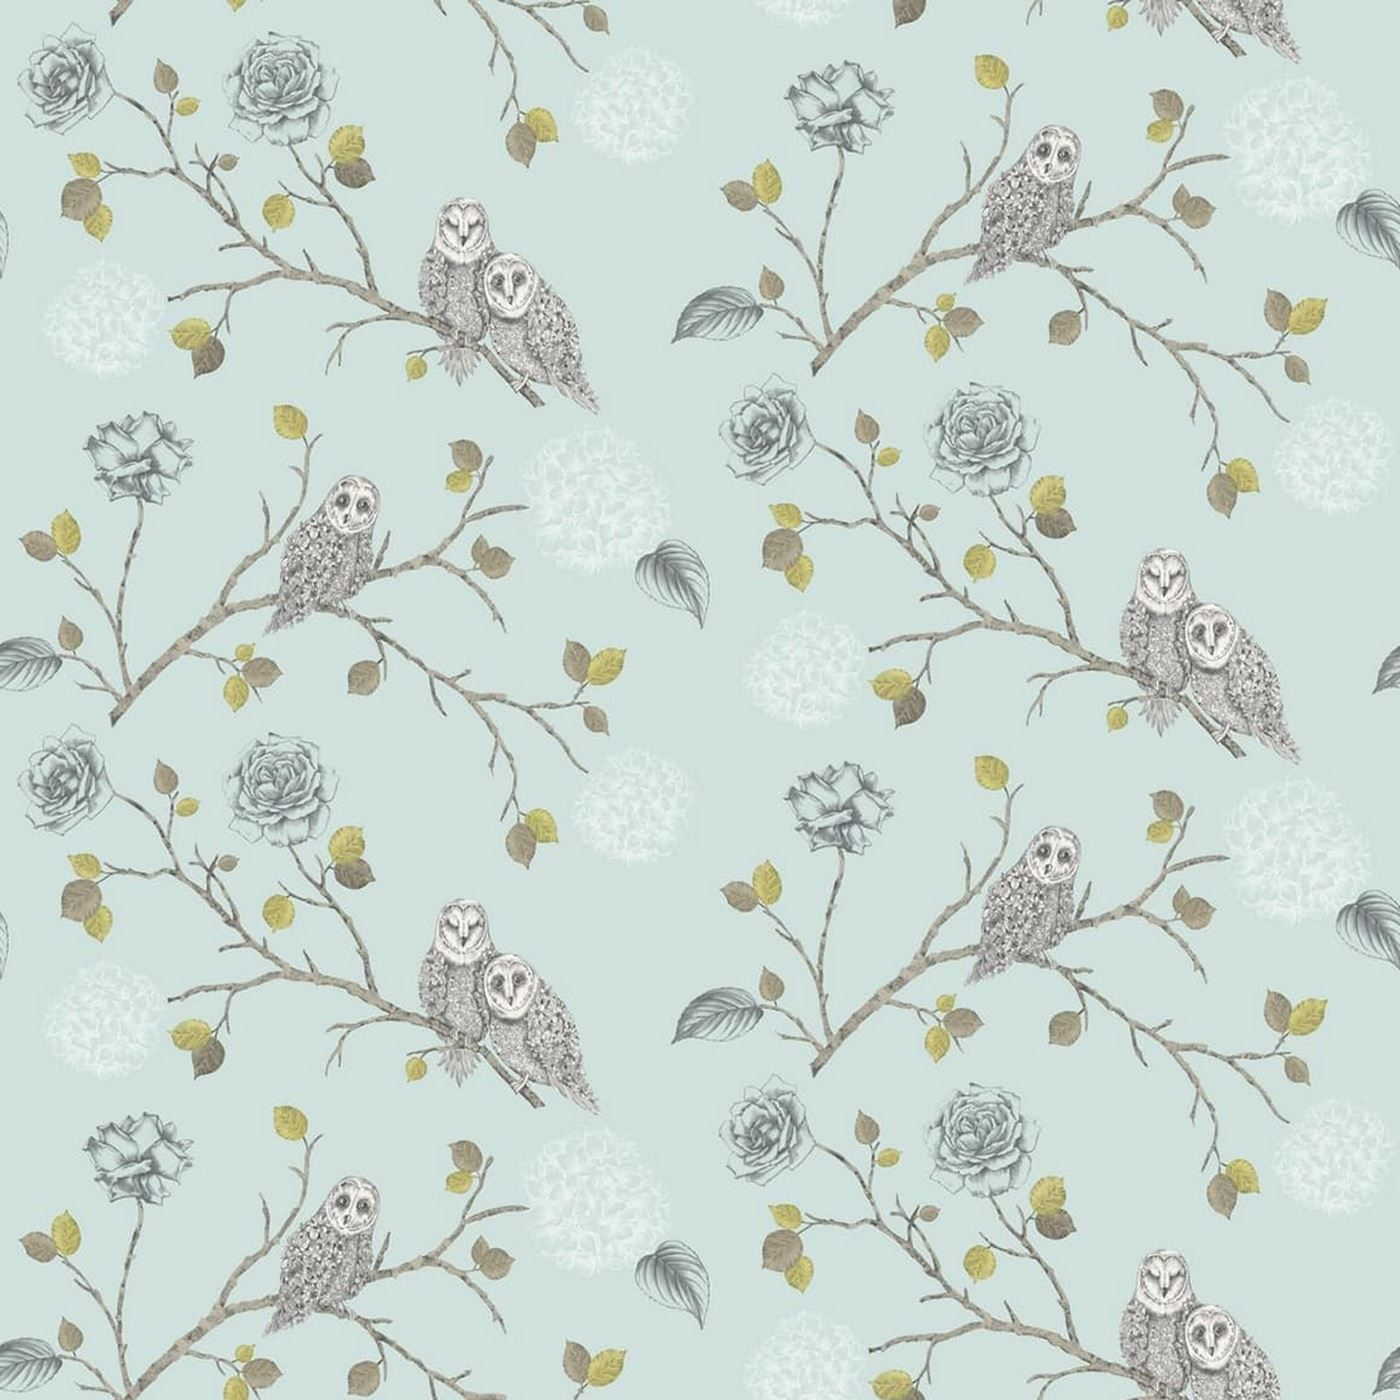 OWLS WALLPAPER CHOOSE FROM 6 DESIGNS NEW WALL DECOR FEATURE FREE PP